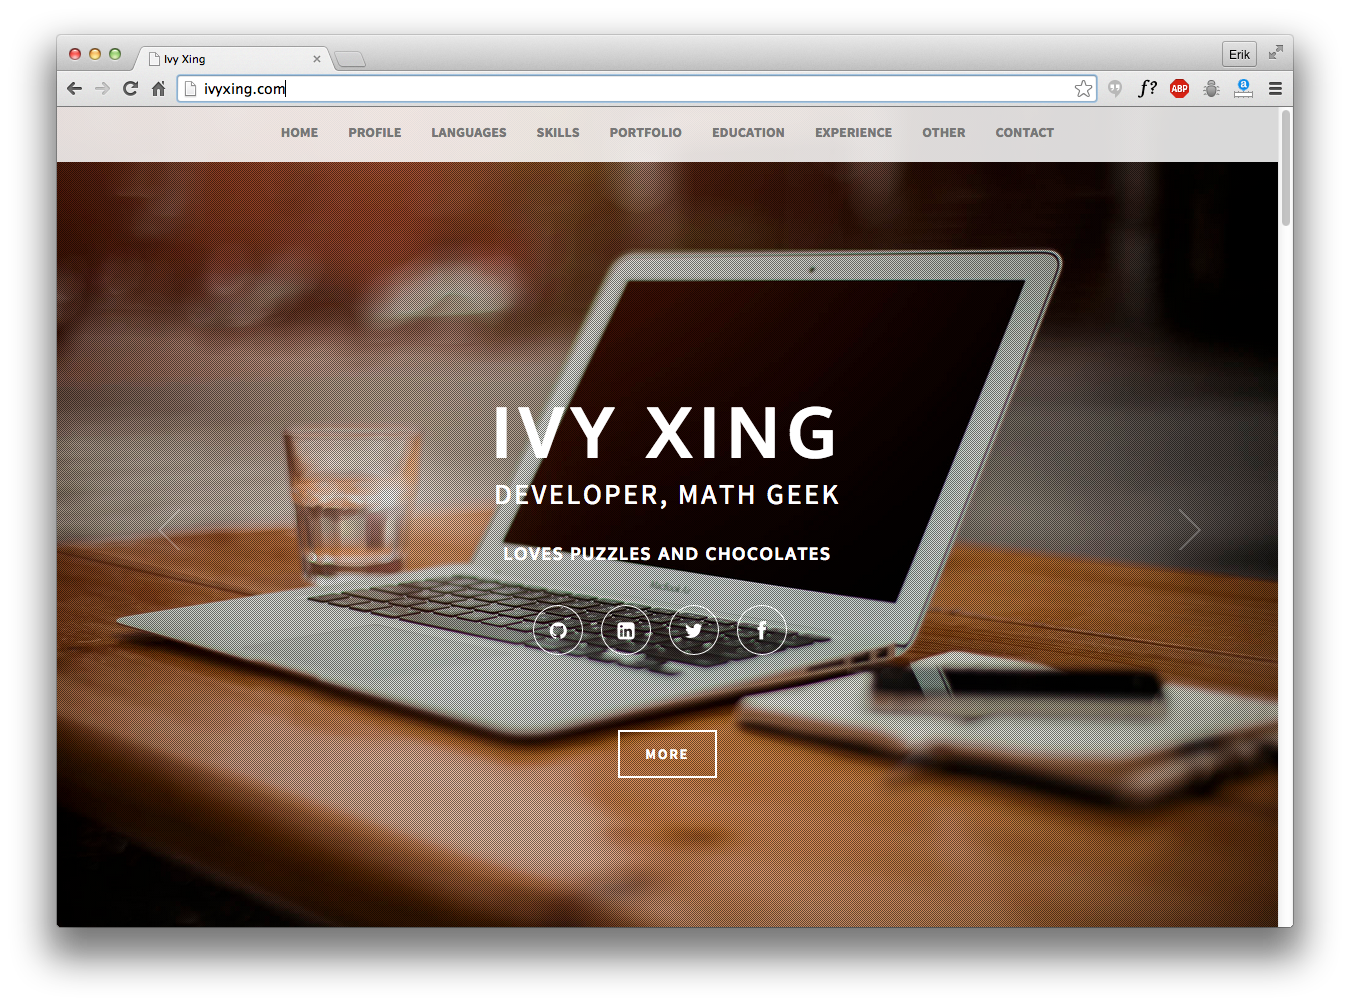 Ivy Xing's Personal Website